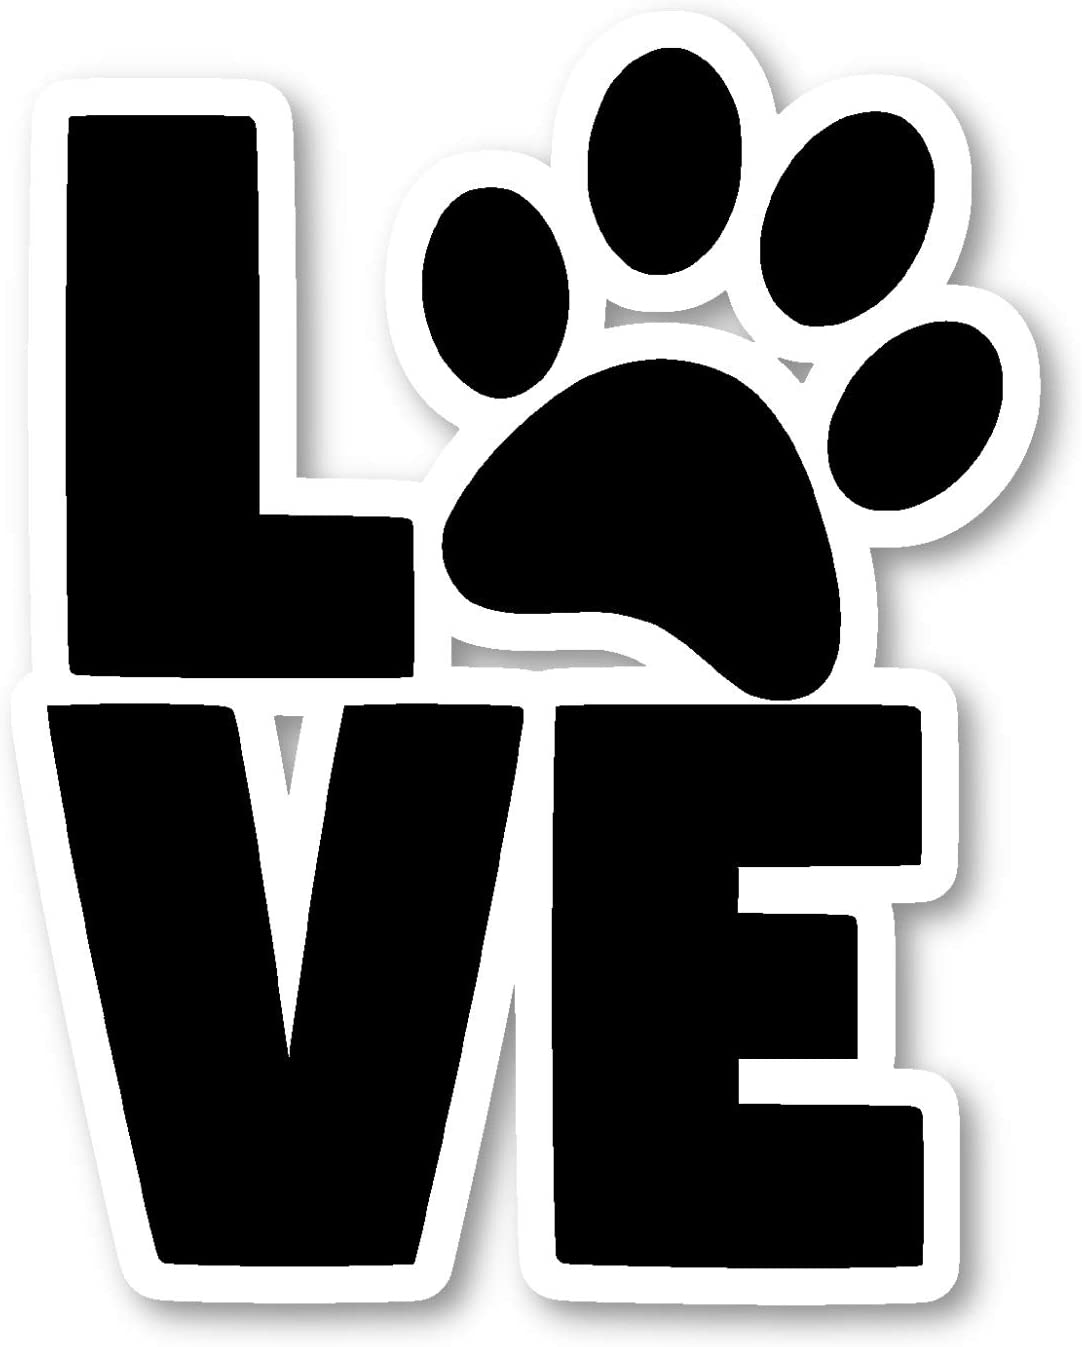 Dog Love Paws Sticker Dog Stickers - 2 Pack - Laptop Stickers - 2.5